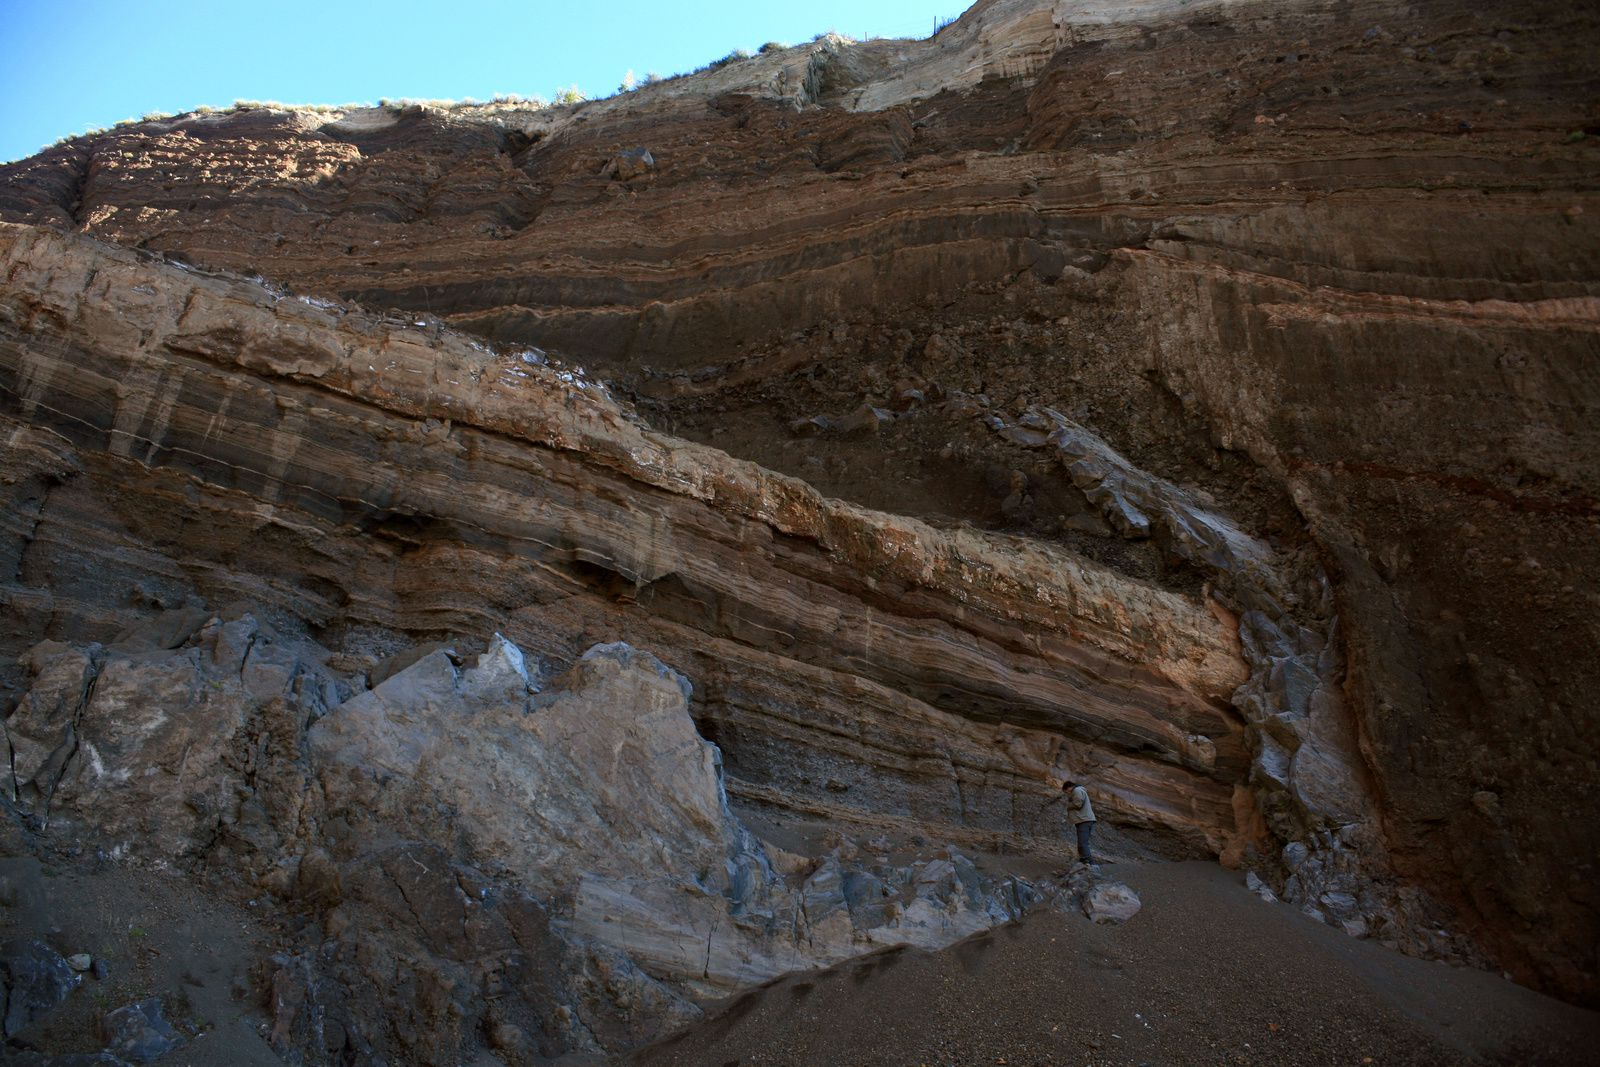 Eppelsberg - Annular basaltic dyke broken by quarrymen (pieces on either side of P.Marcel, which gives the scale) ... imagine a truncated cone structure in the thickness of the sediments - photo © B.Duyck 2007